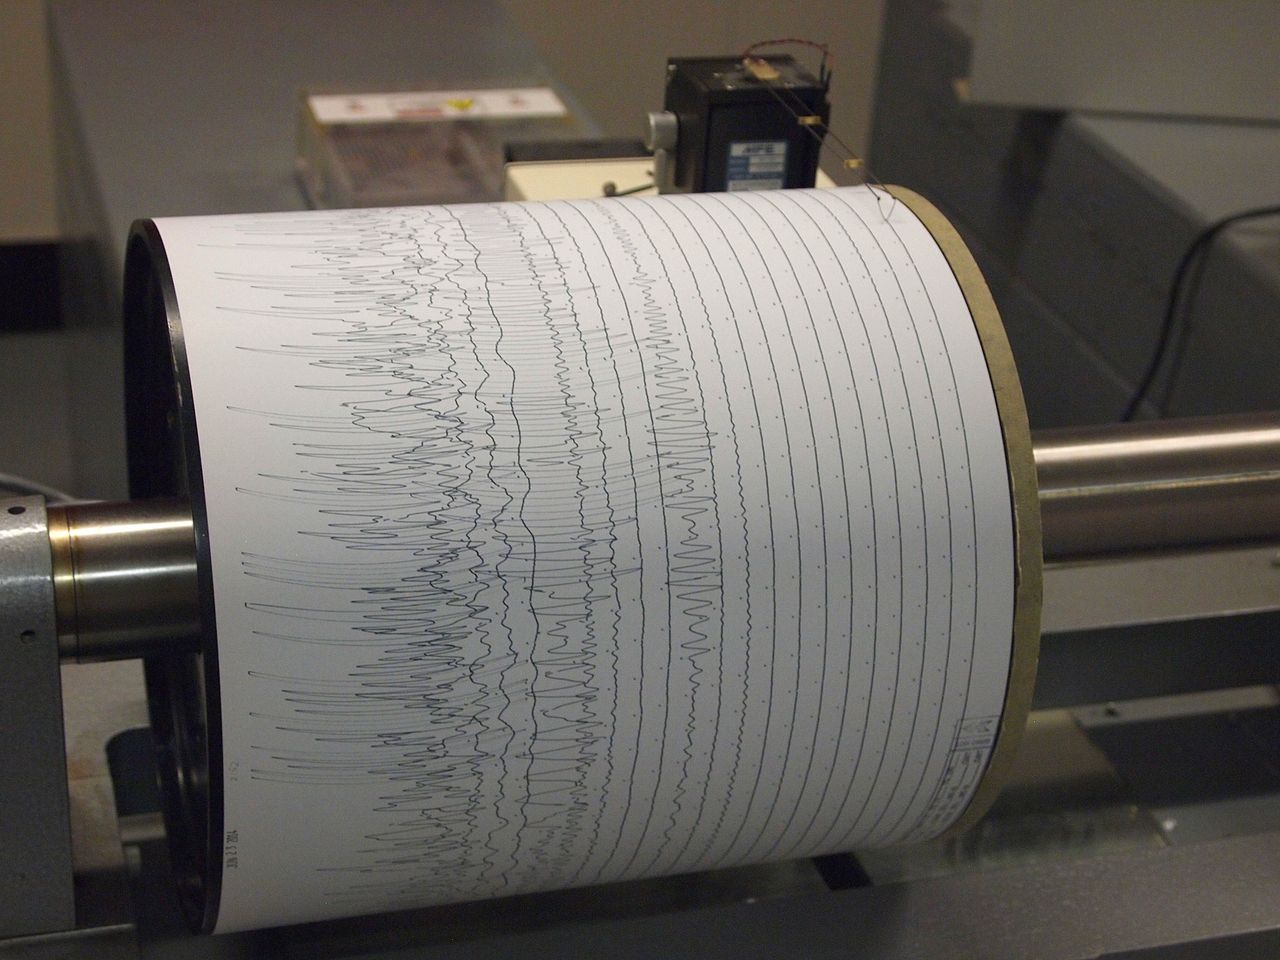 https://upload.wikimedia.org/wikipedia/commons/thumb/e/eb/Seismogram_at_Weston_Observatory.JPG/1280px-Seismogram_at_Weston_Observatory.JPG